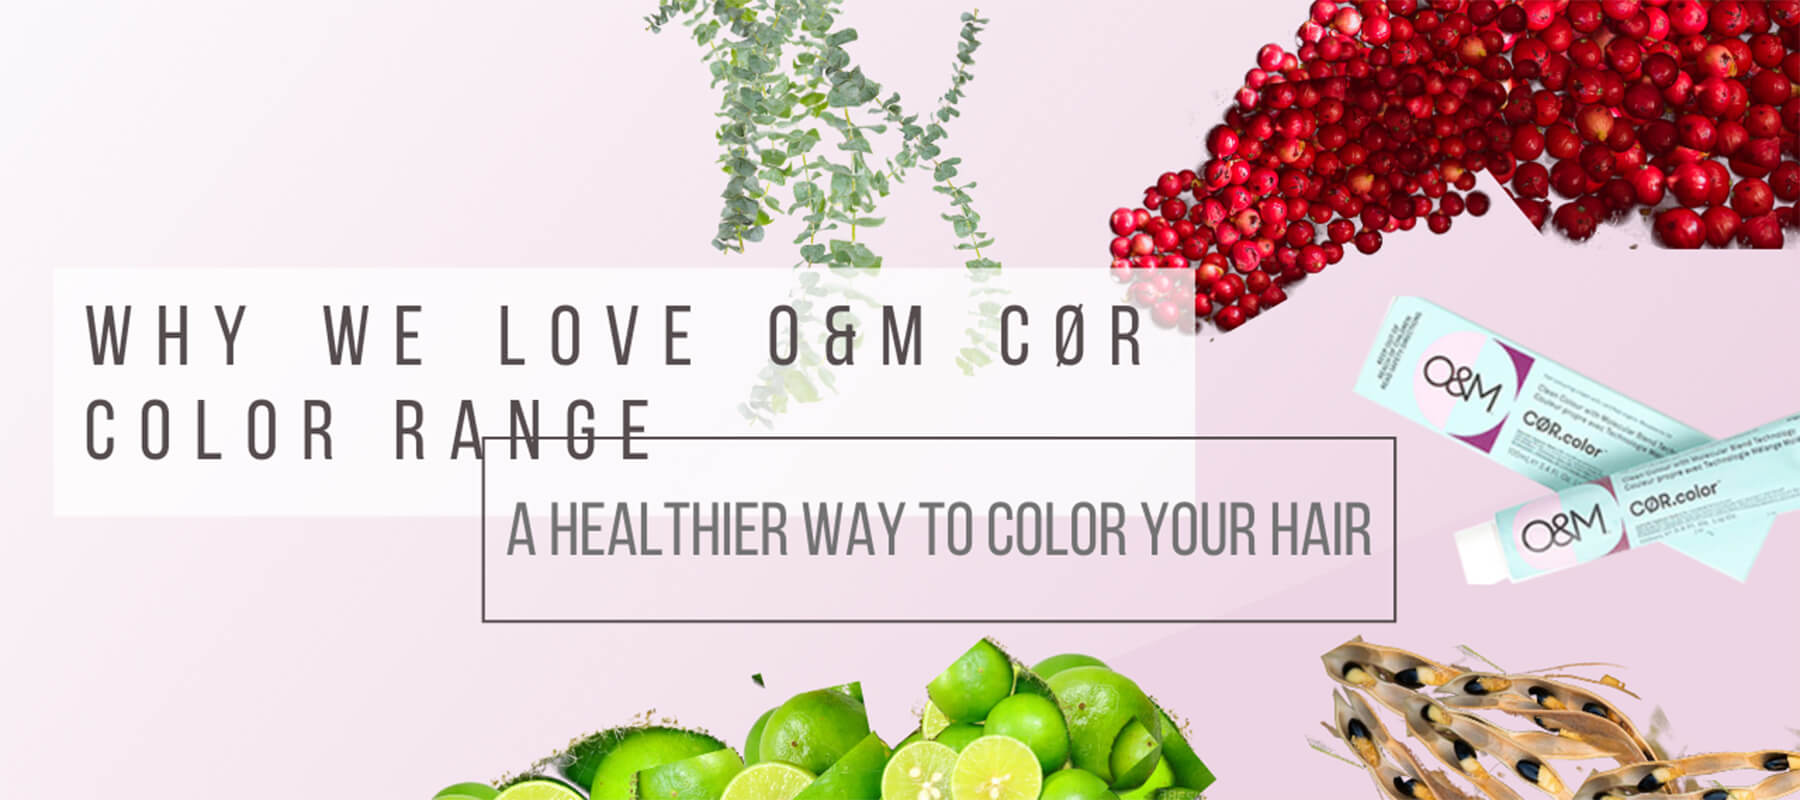 Healthier Way To Colour Hair graphic with botanicals